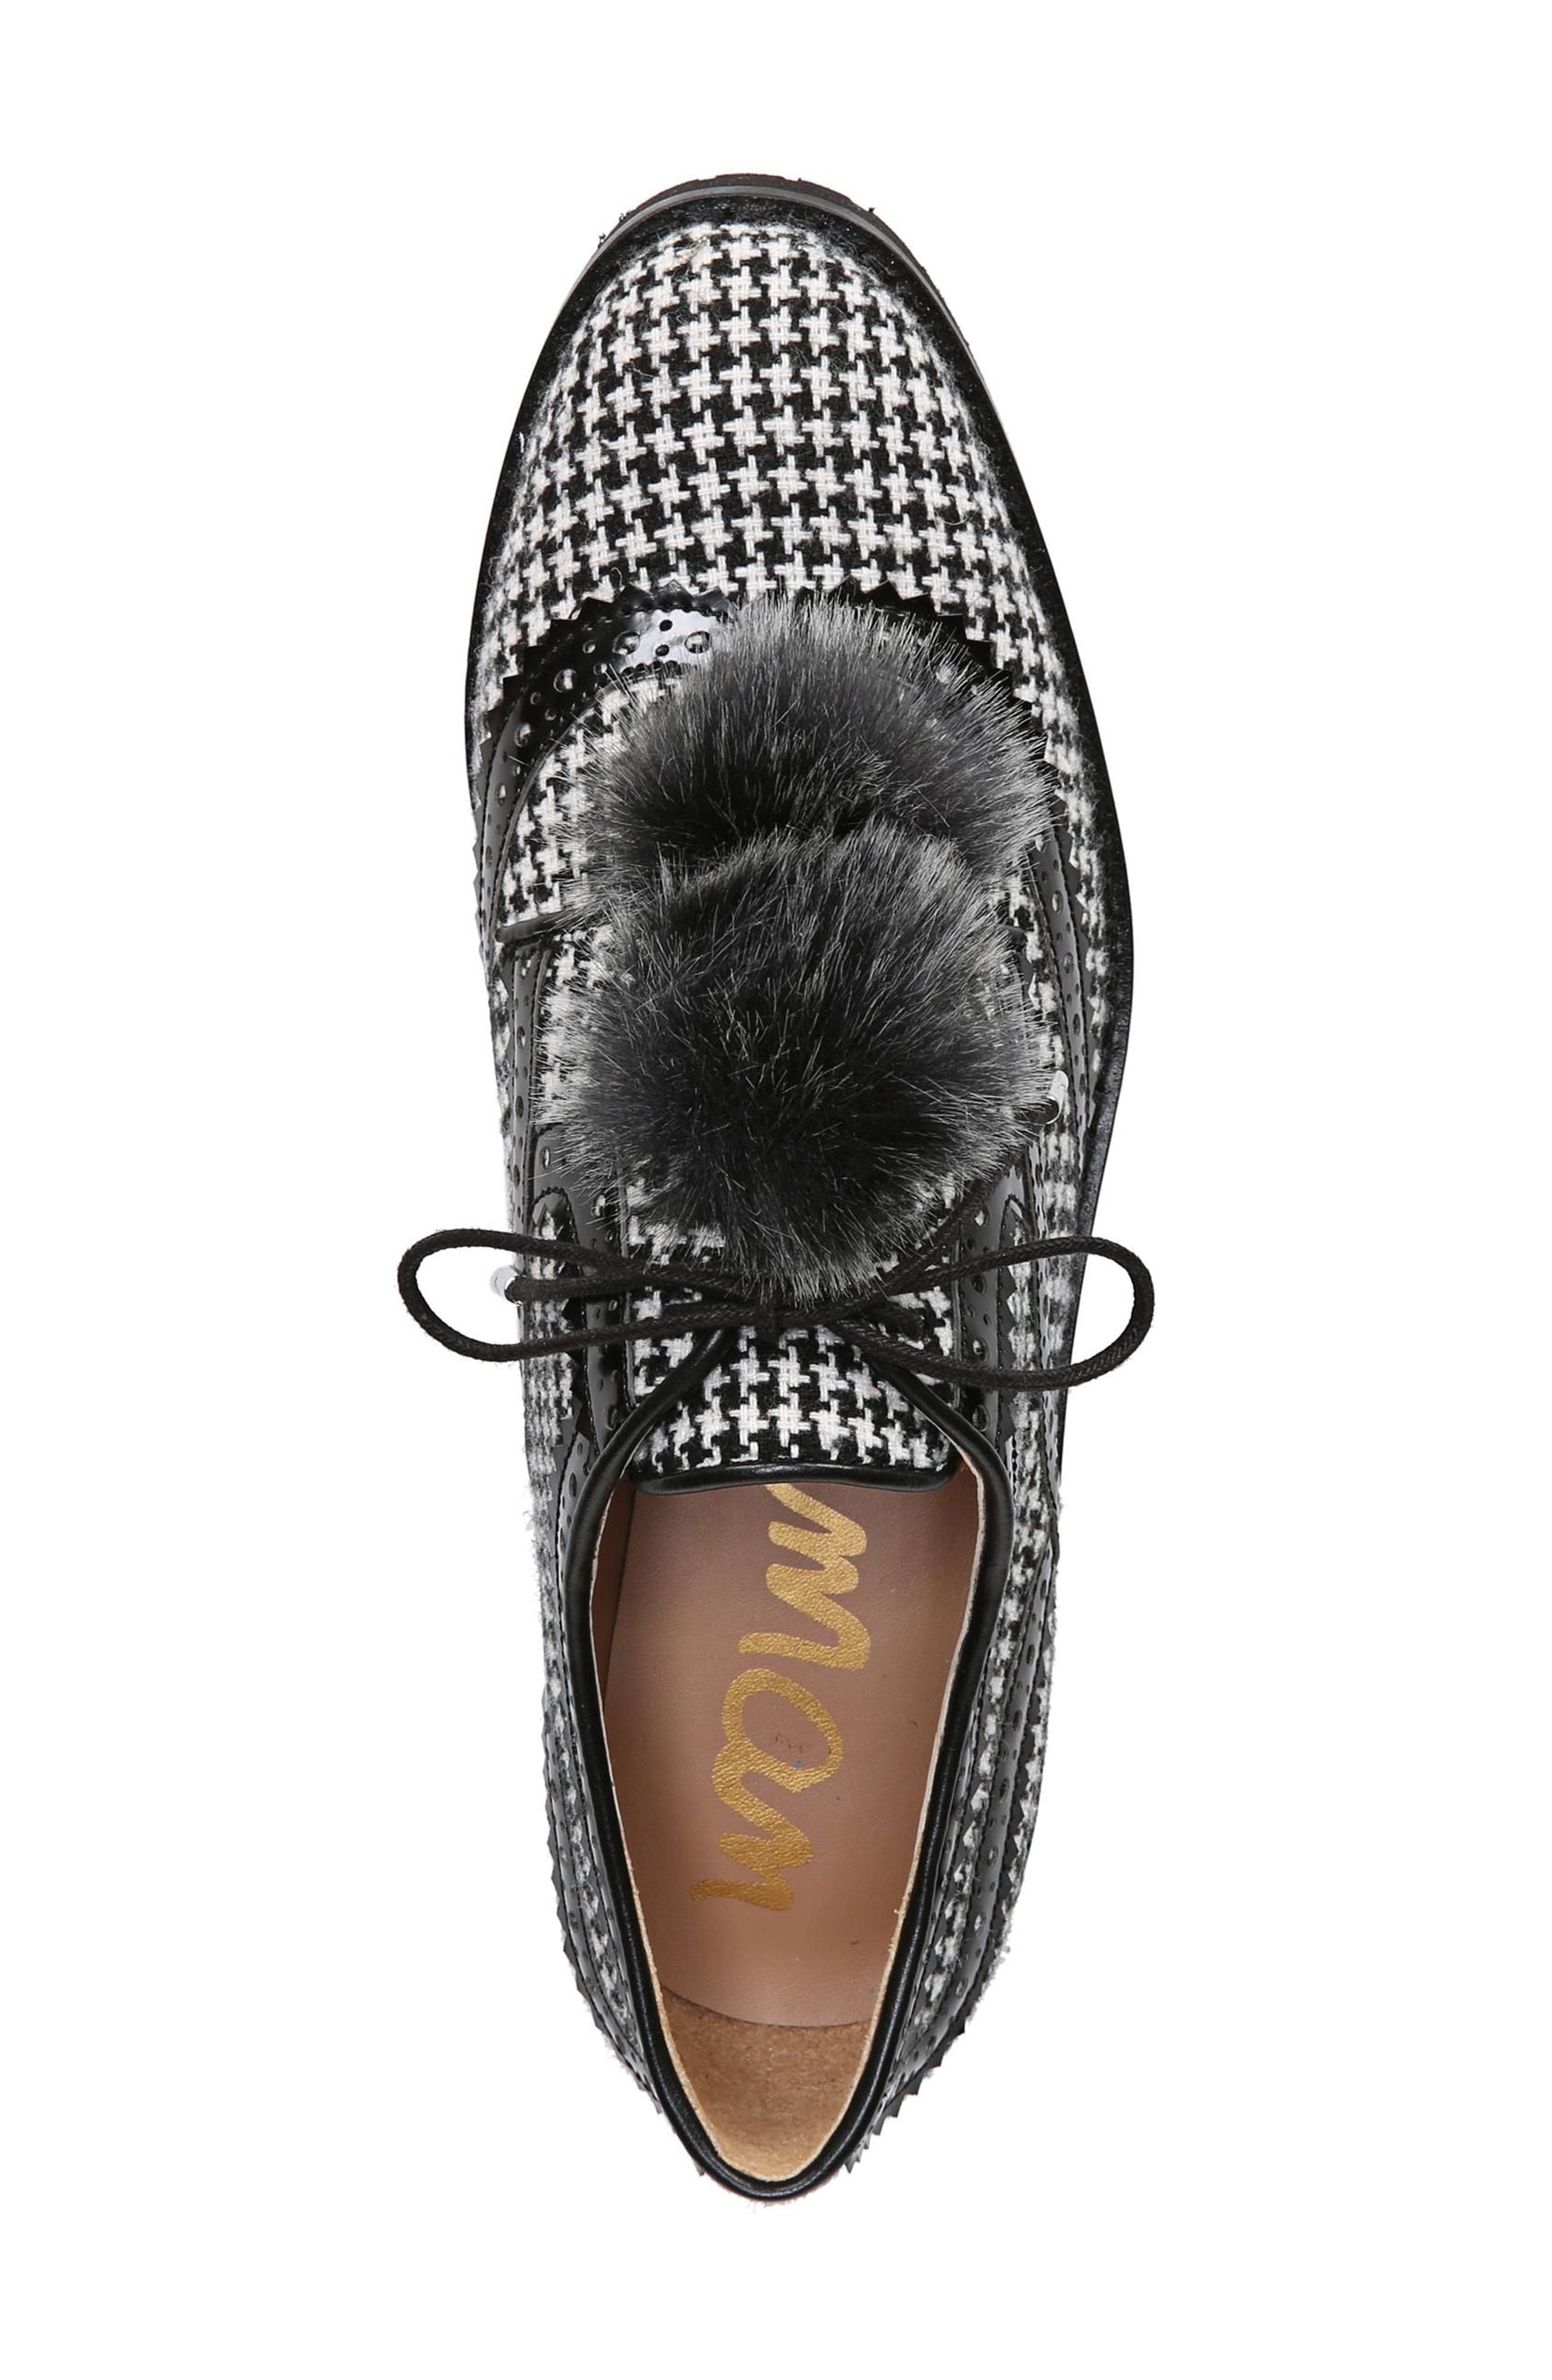 Dahl Oxford with Faux Fur Pompom,                             Alternate thumbnail 5, color,                             Black/ White Houndstooth